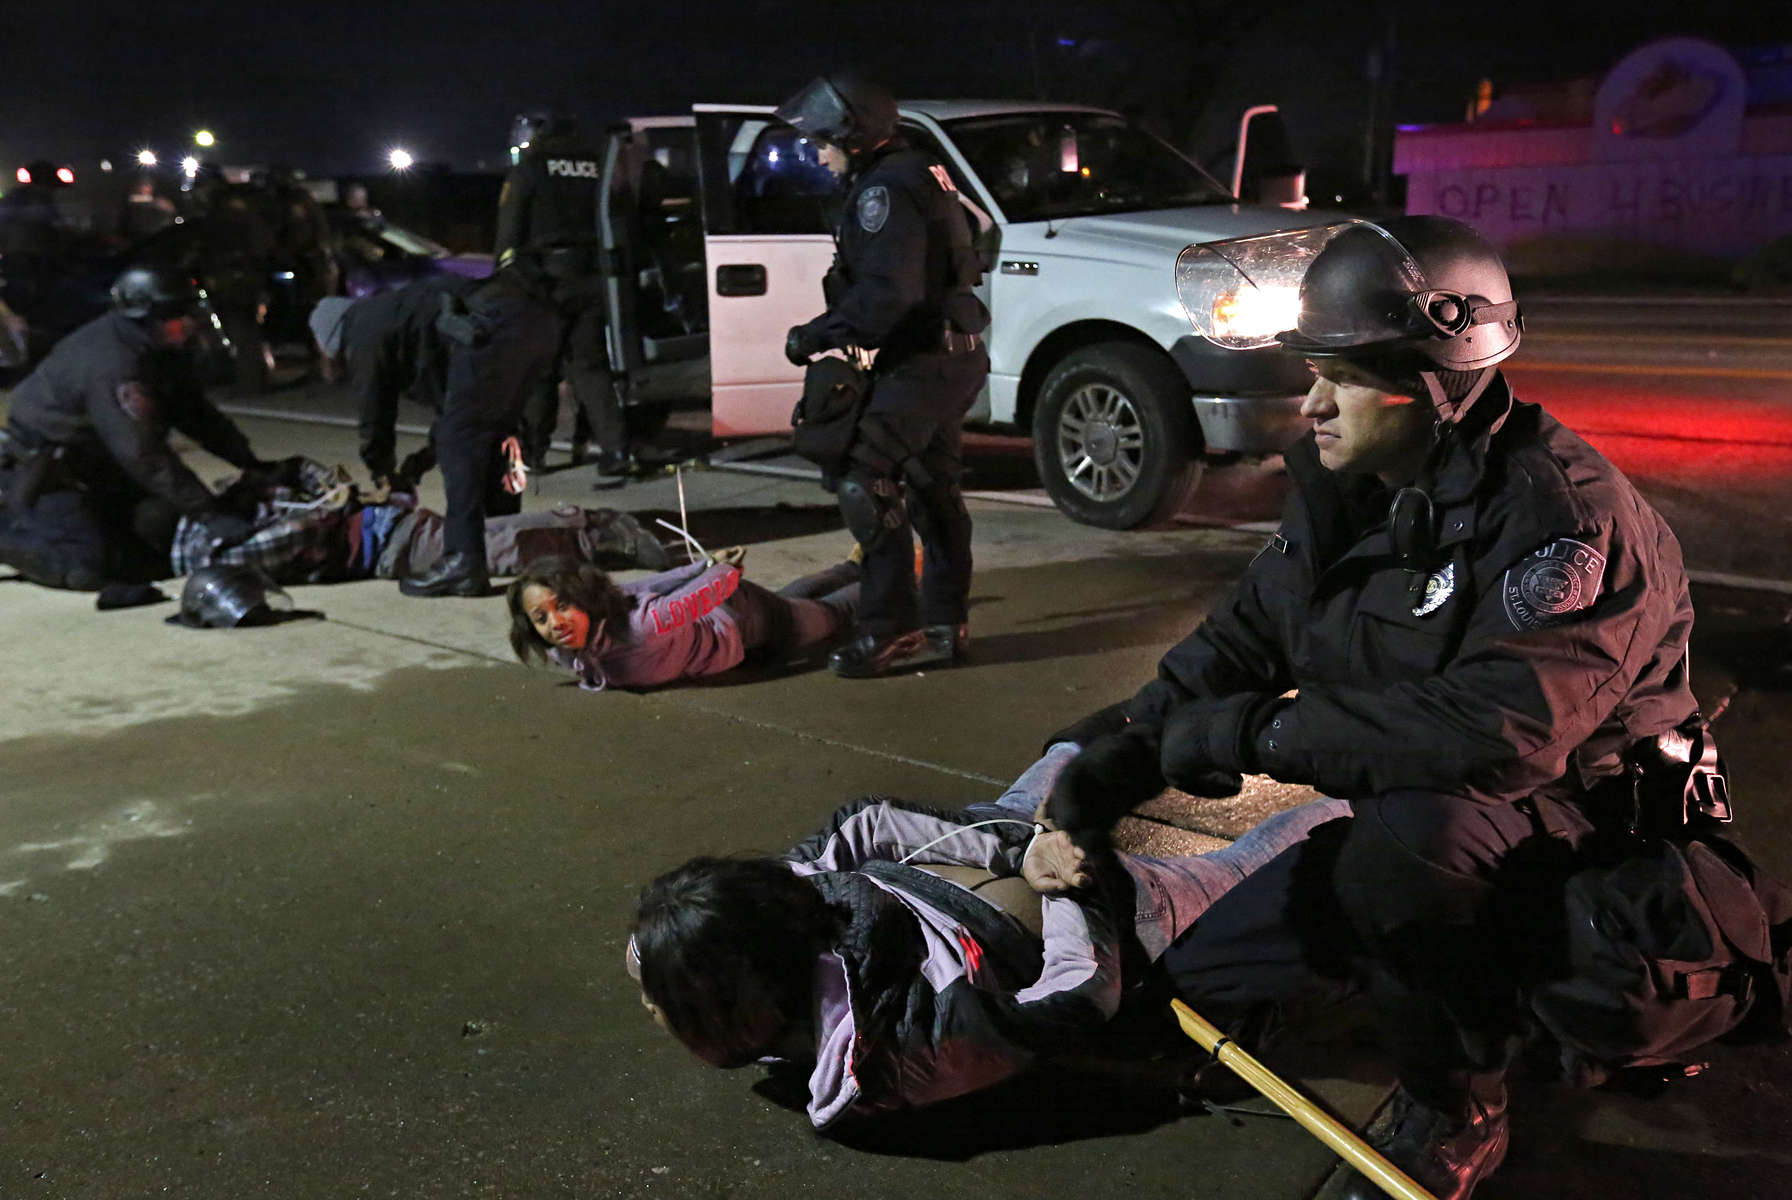 Police officers take a group of people into custody on New Halls Ferry Road on suspicion of looting in Ferguson on Tuesday, Nov. 25, 2014. Photo By David Carson, dcarson@post-dispatch.com